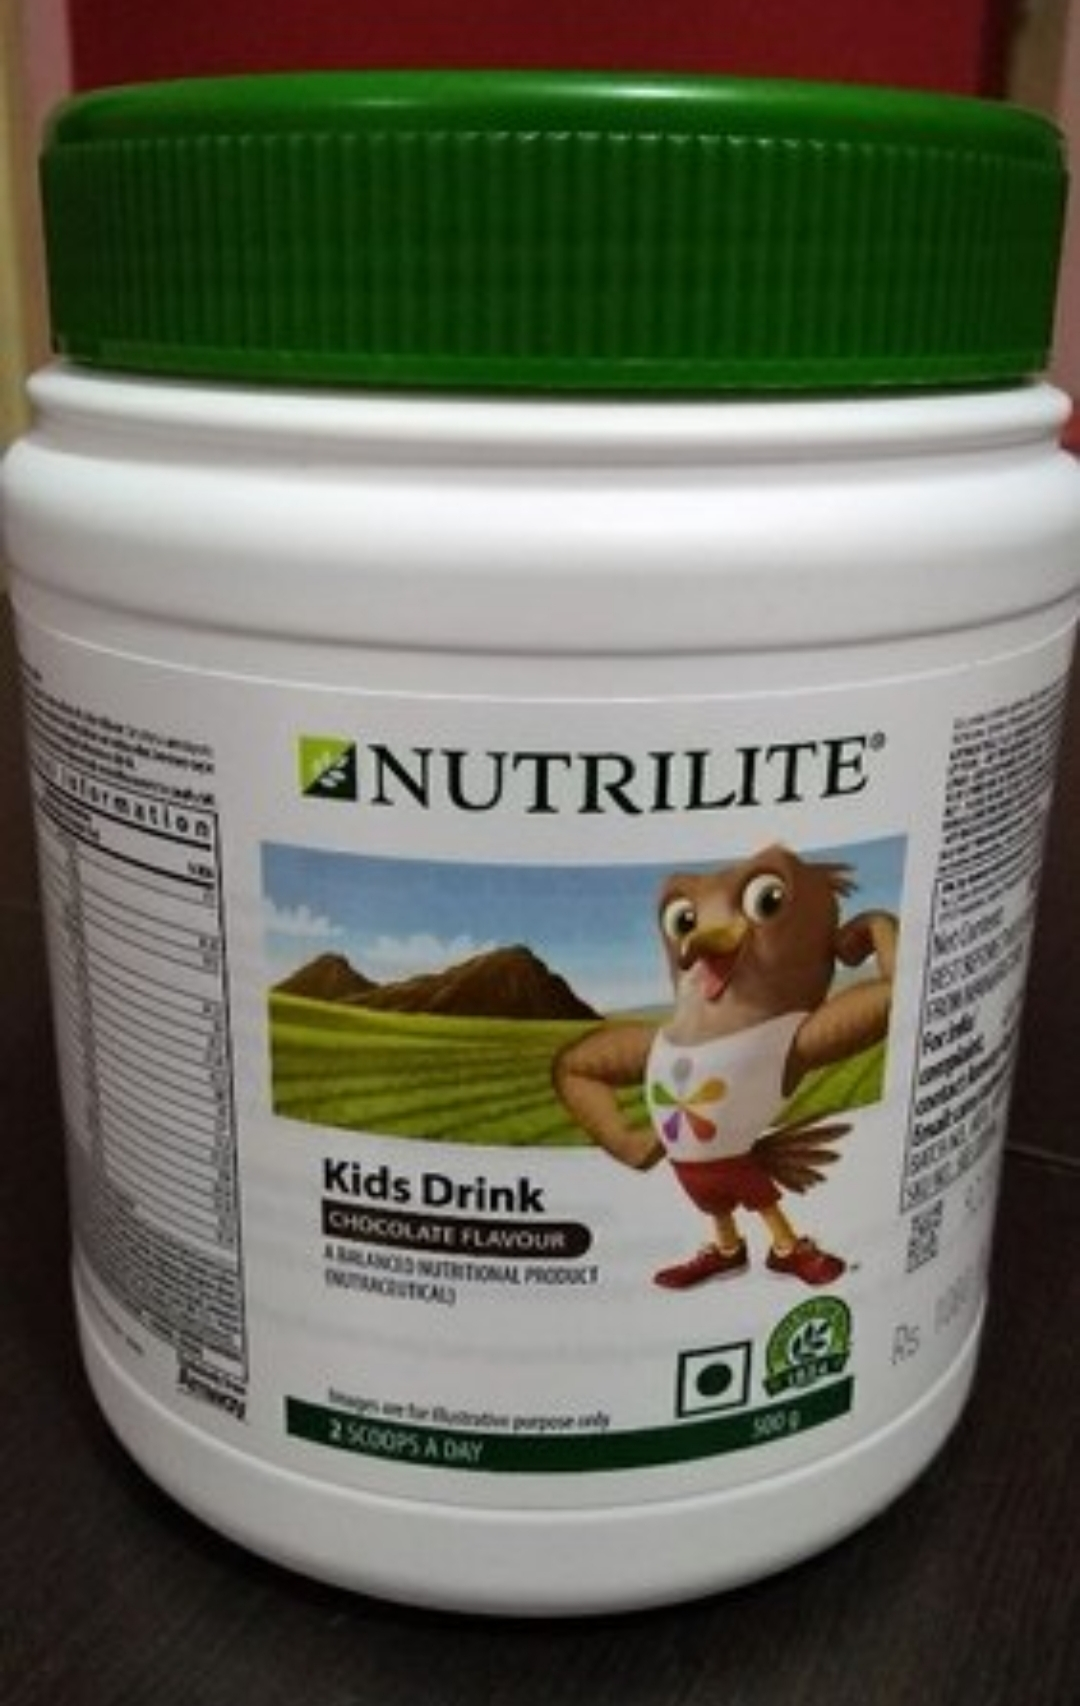 Amway Nutrilite Kids Drink Chocolate Flavour-Amway kids drink-By simranwalia29